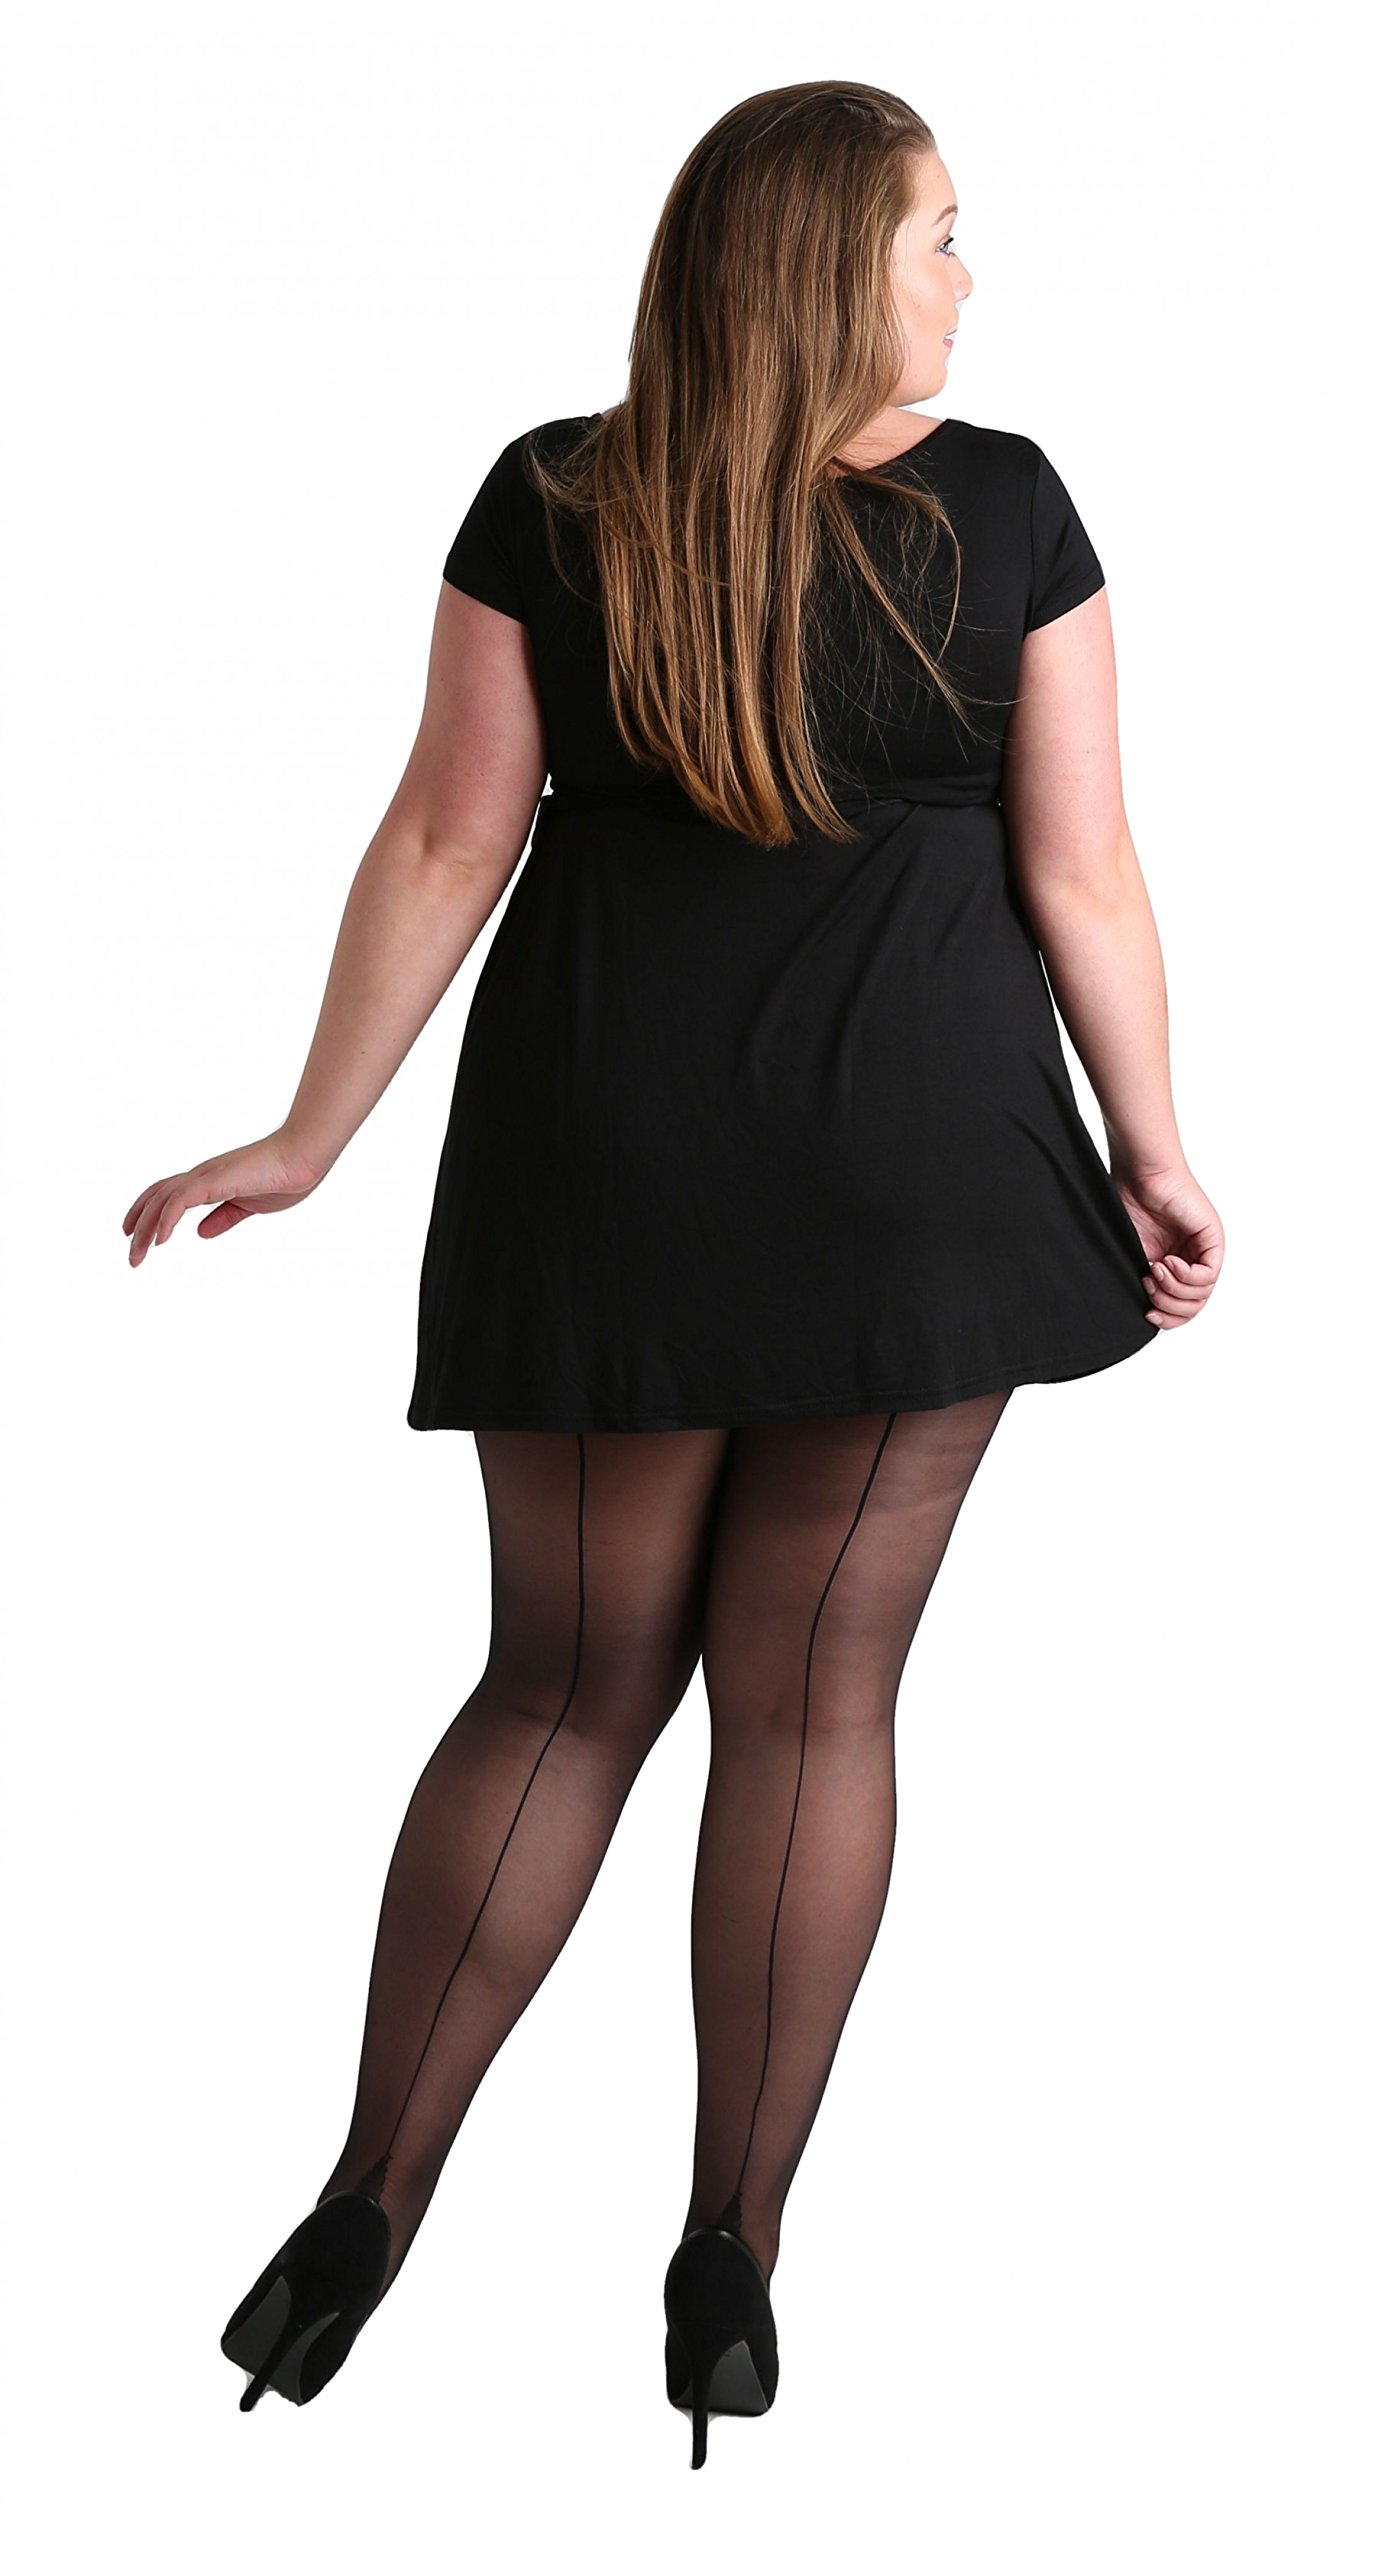 Plus Size Classic Seamed Sheer Denier Tights Black. Stripe Pantyhose for Large Sizes [Made in Italy] (16-22)